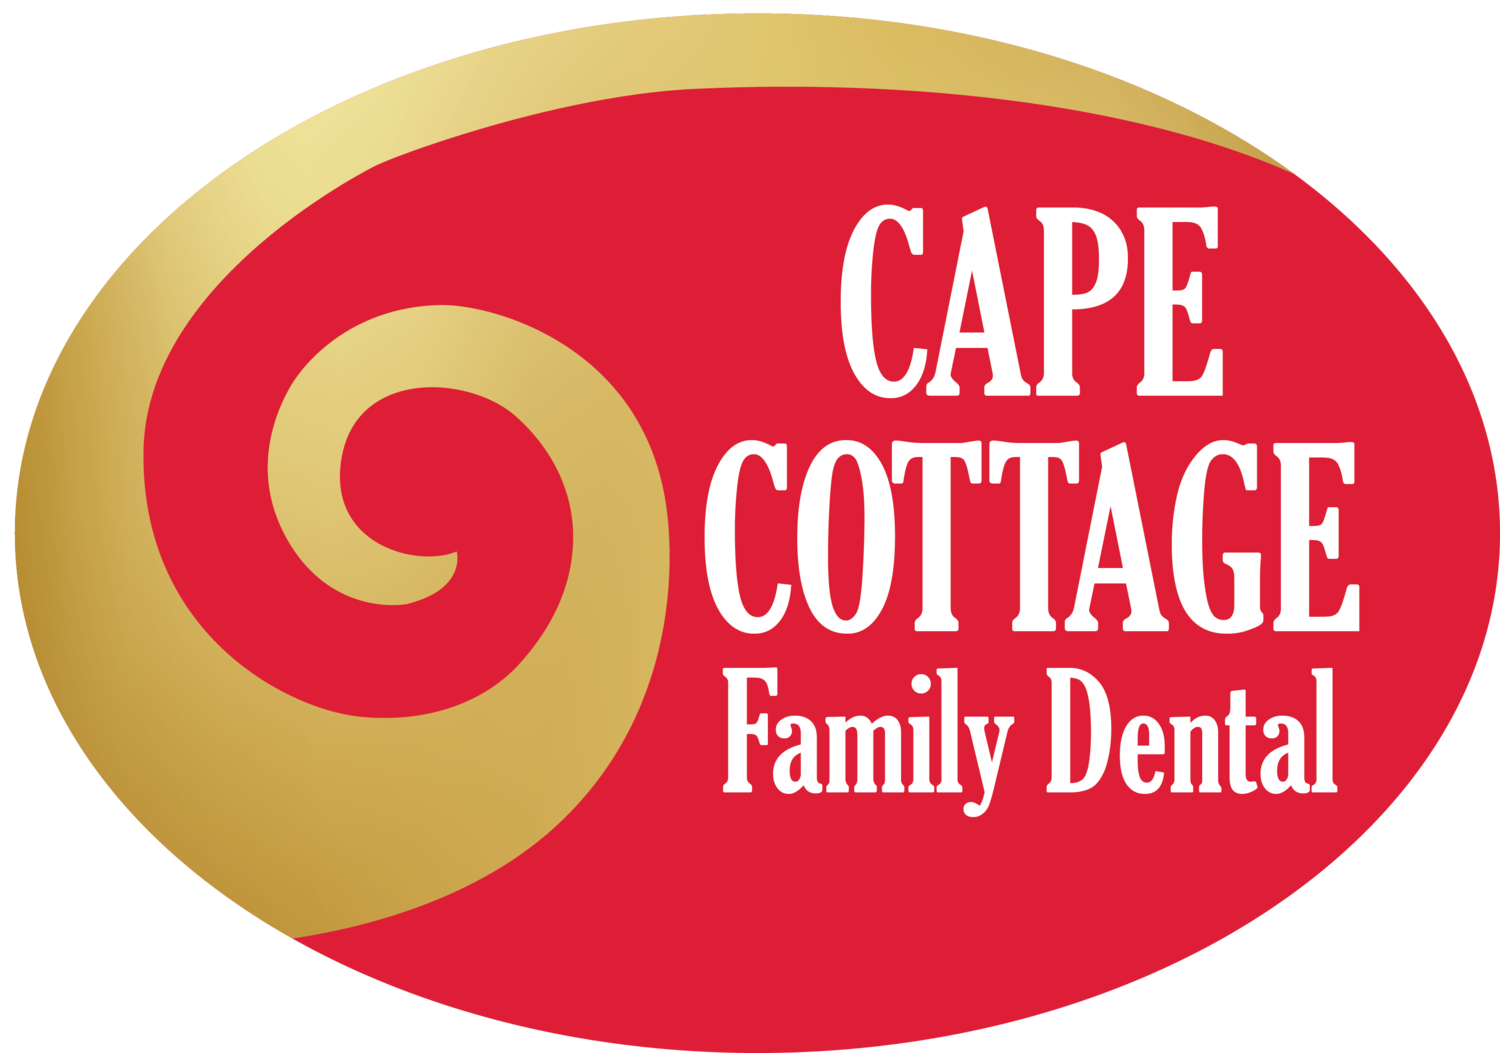 Cape Cottage Family Dental